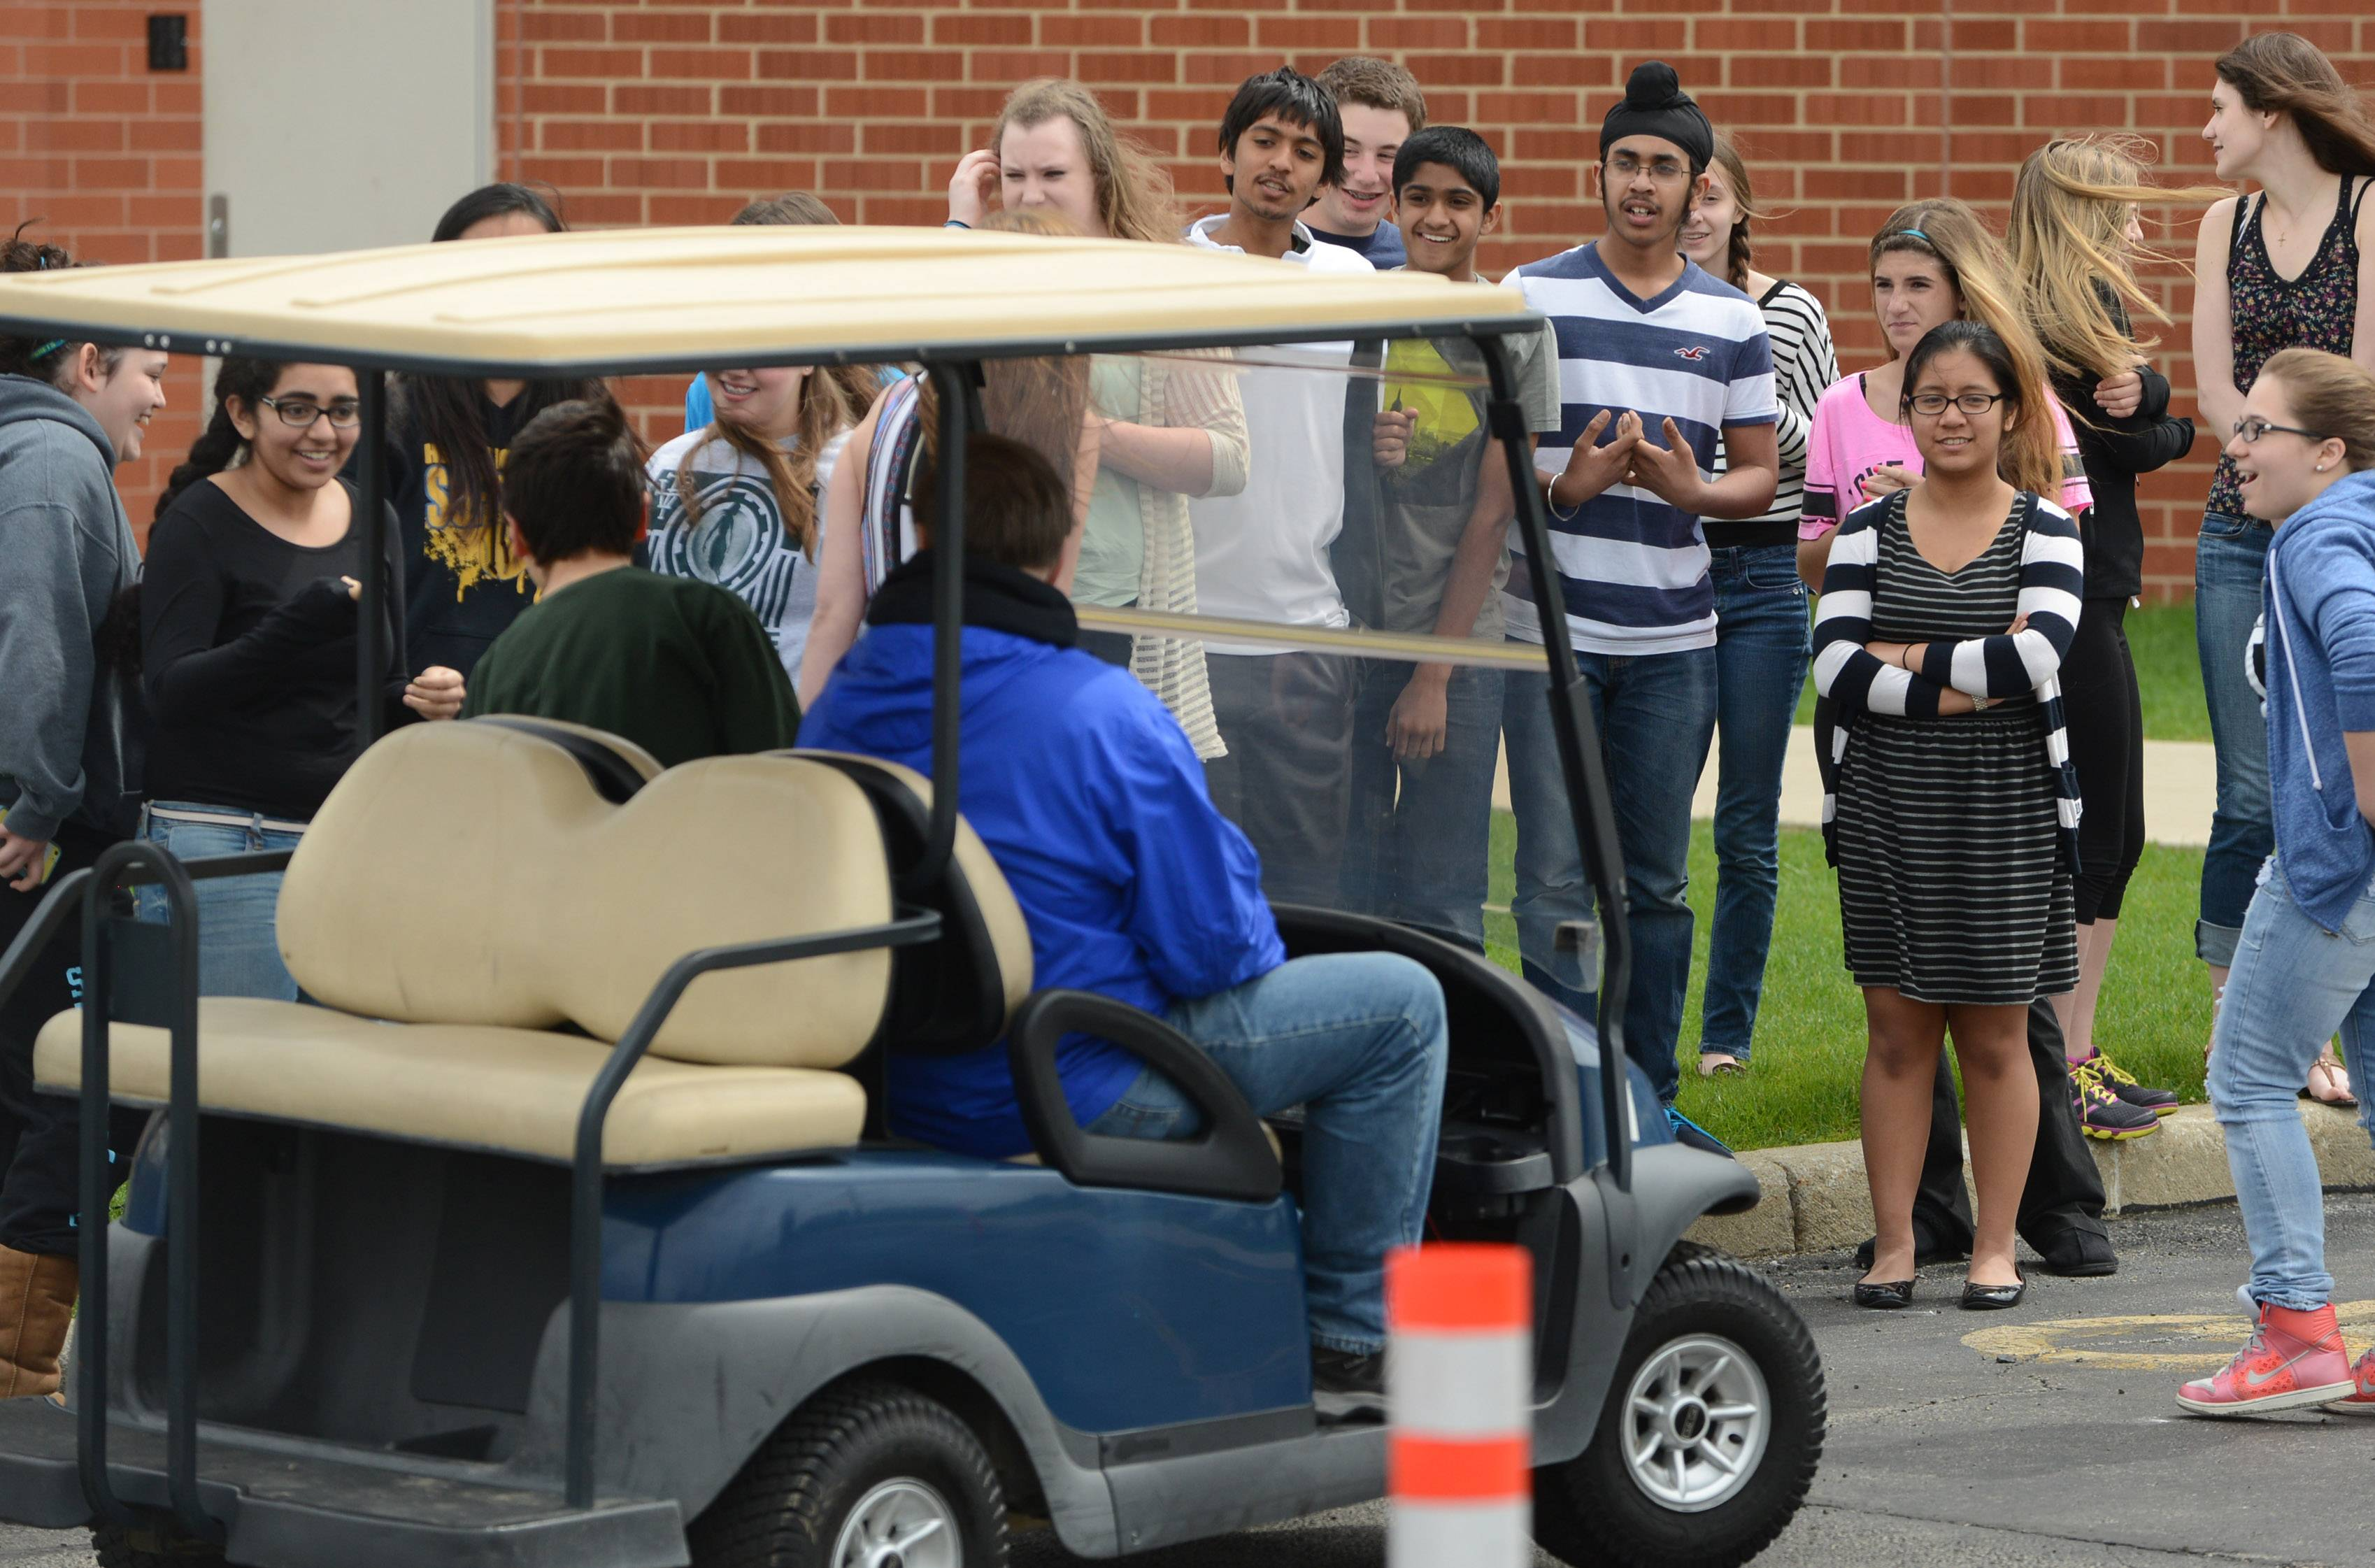 Students at Vernon Hills High School participated in a prom week obstacle course activity wearing special goggles simulating drunken driving on Wednesday.